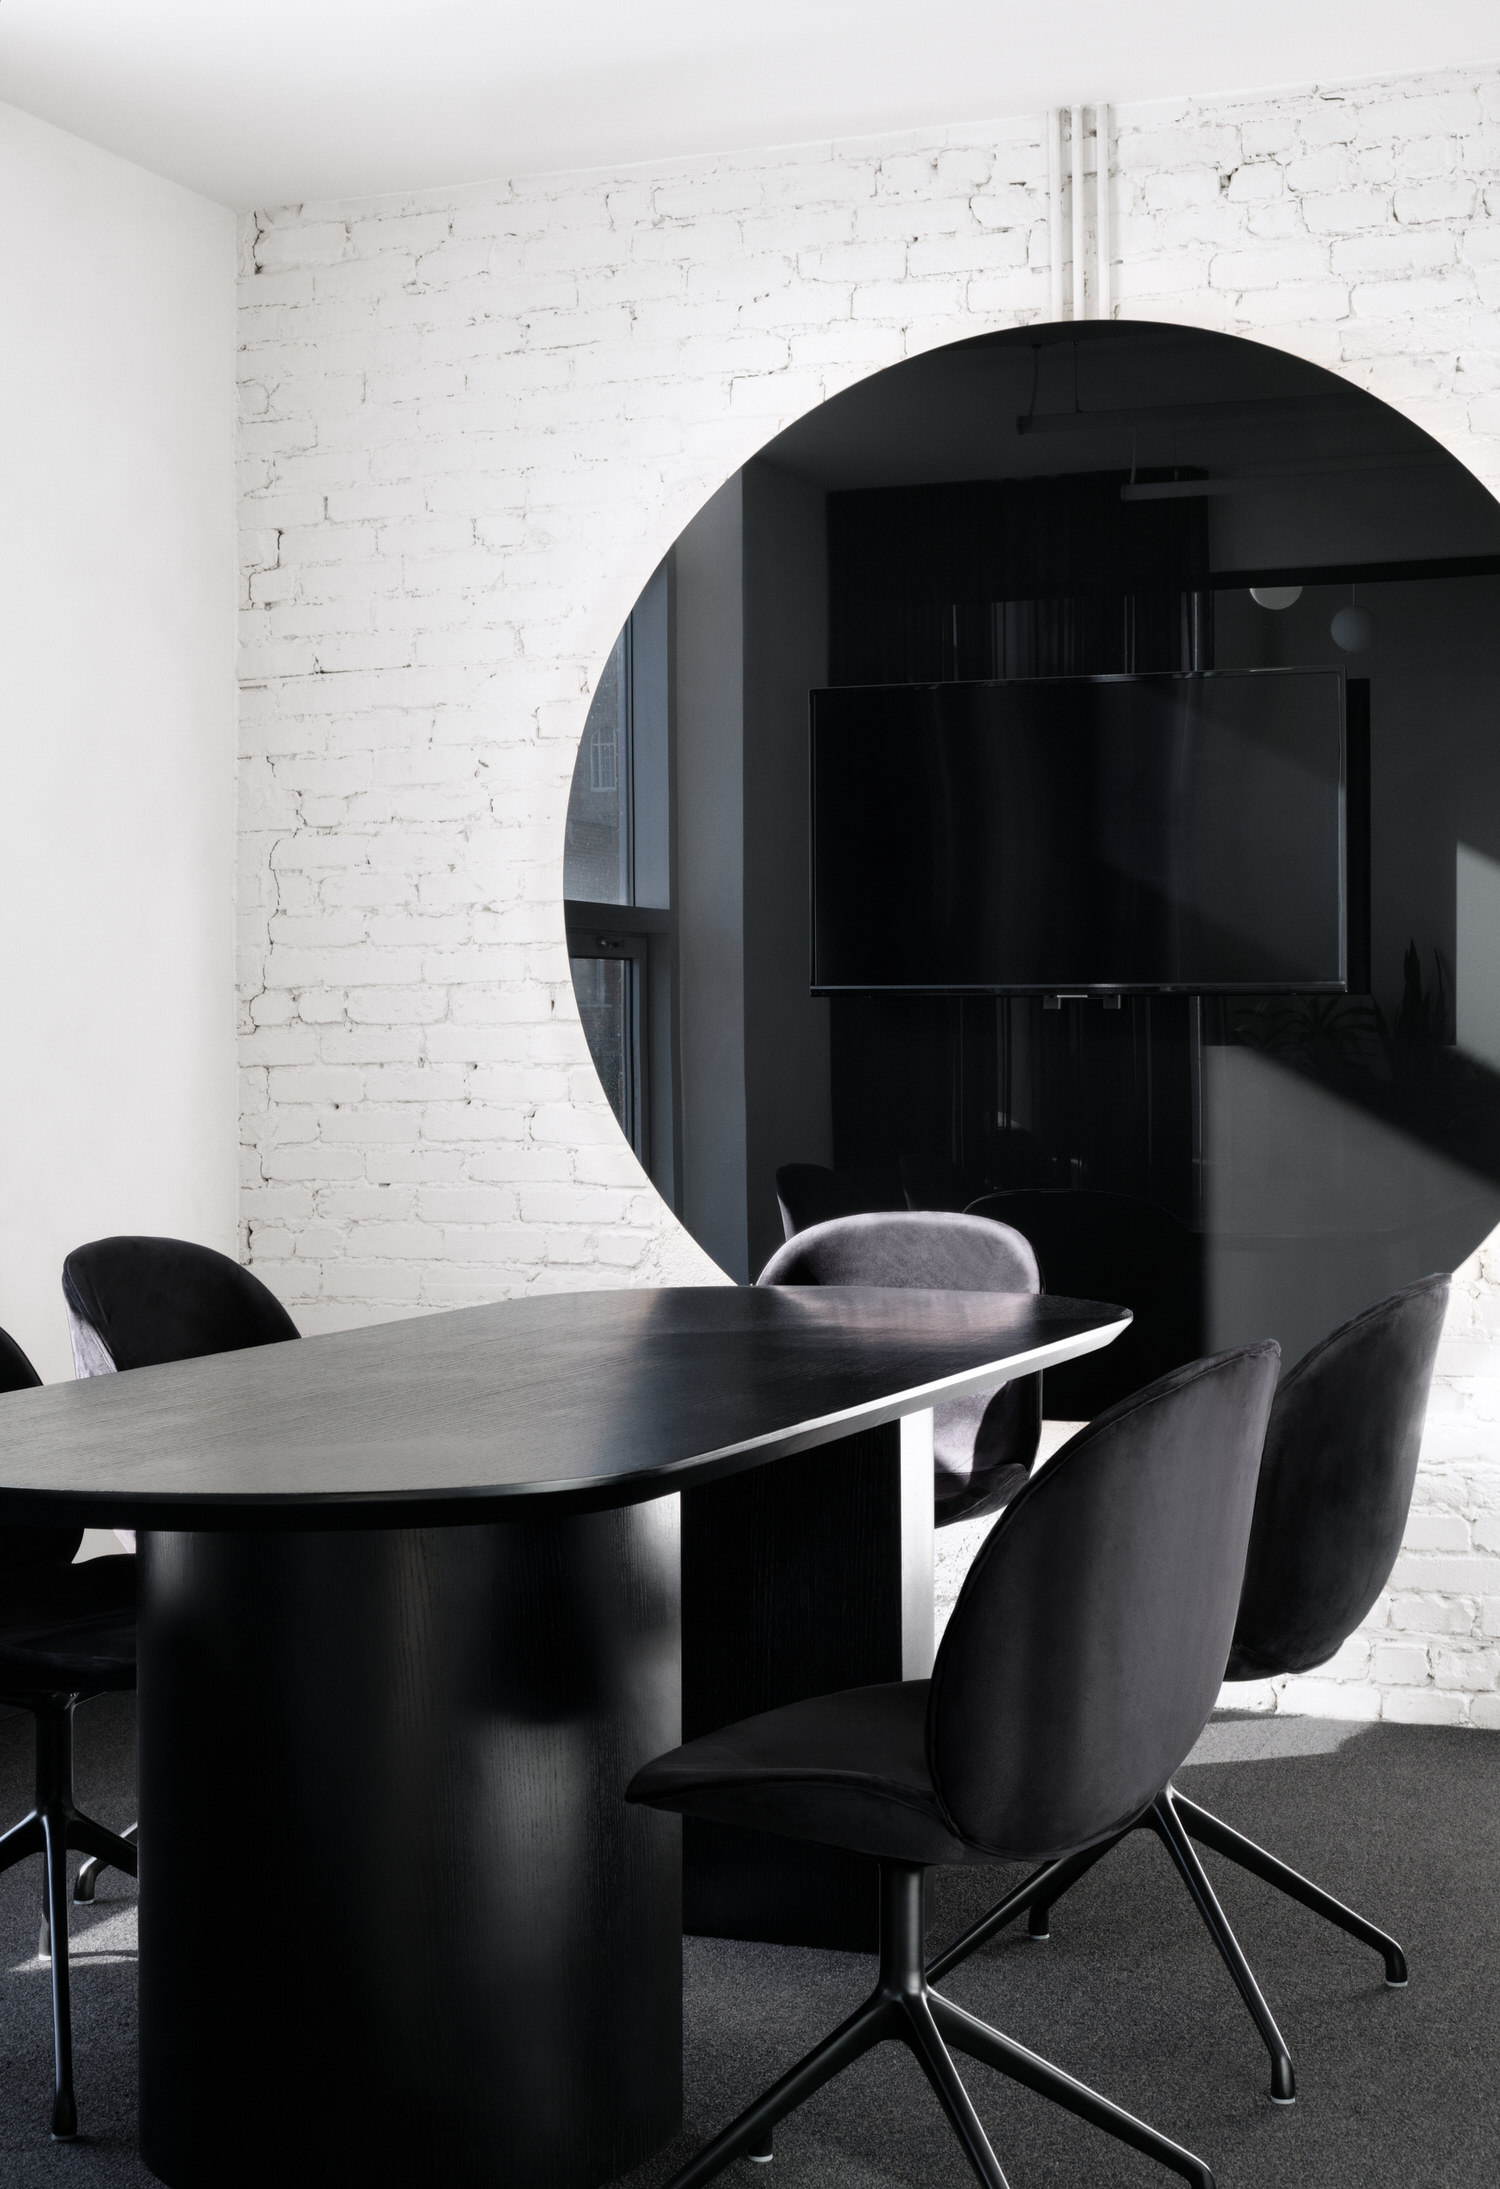 Ivy Studio Spacial Coworking Office Montreal Photo Alex Lesage Yellowtrace 13